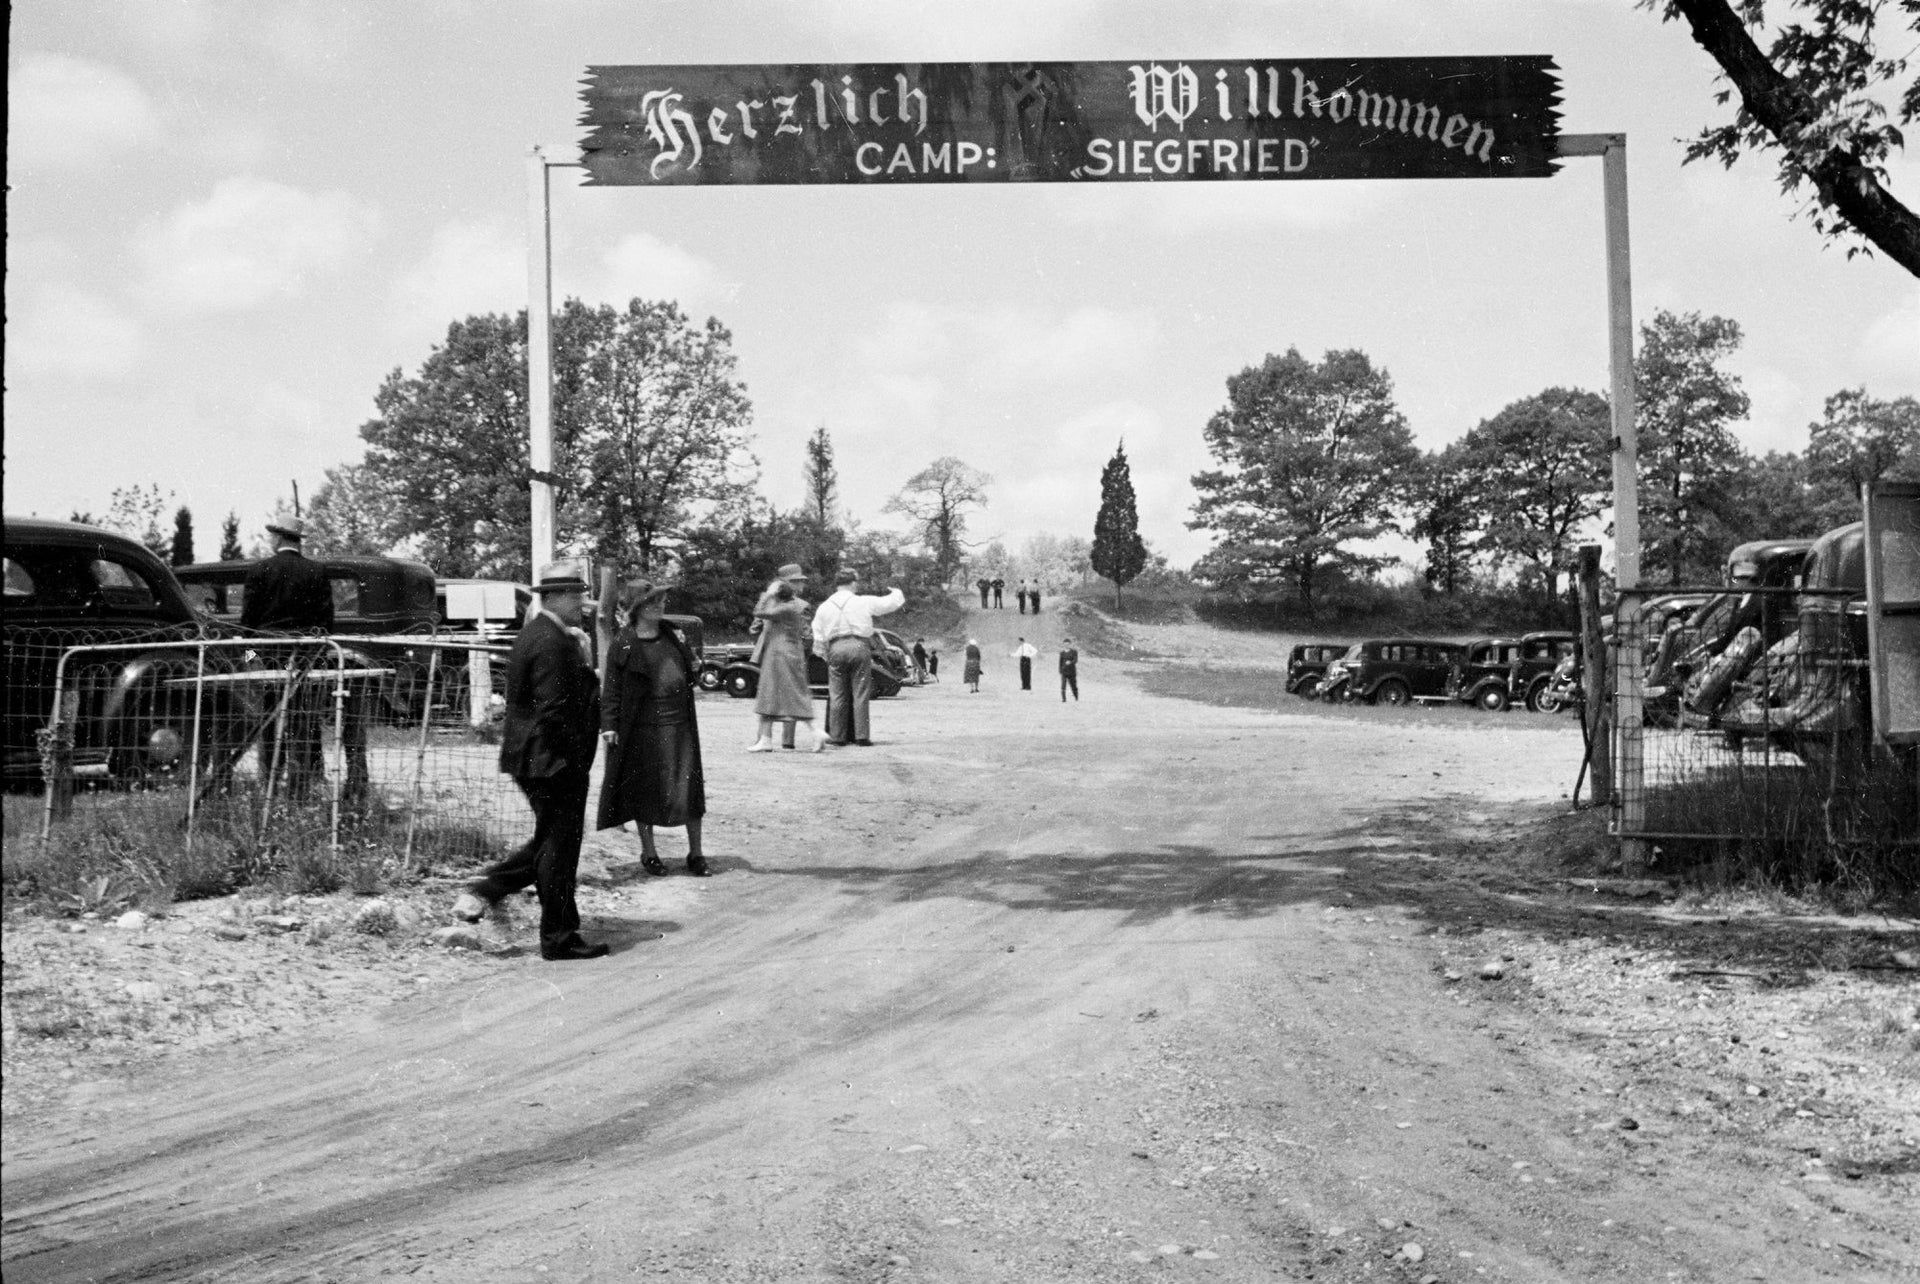 In this May 22, 1938 photo provided by the New York City Municipal Archives the front gate of Camp Siegfried in Yaphank, N.Y.